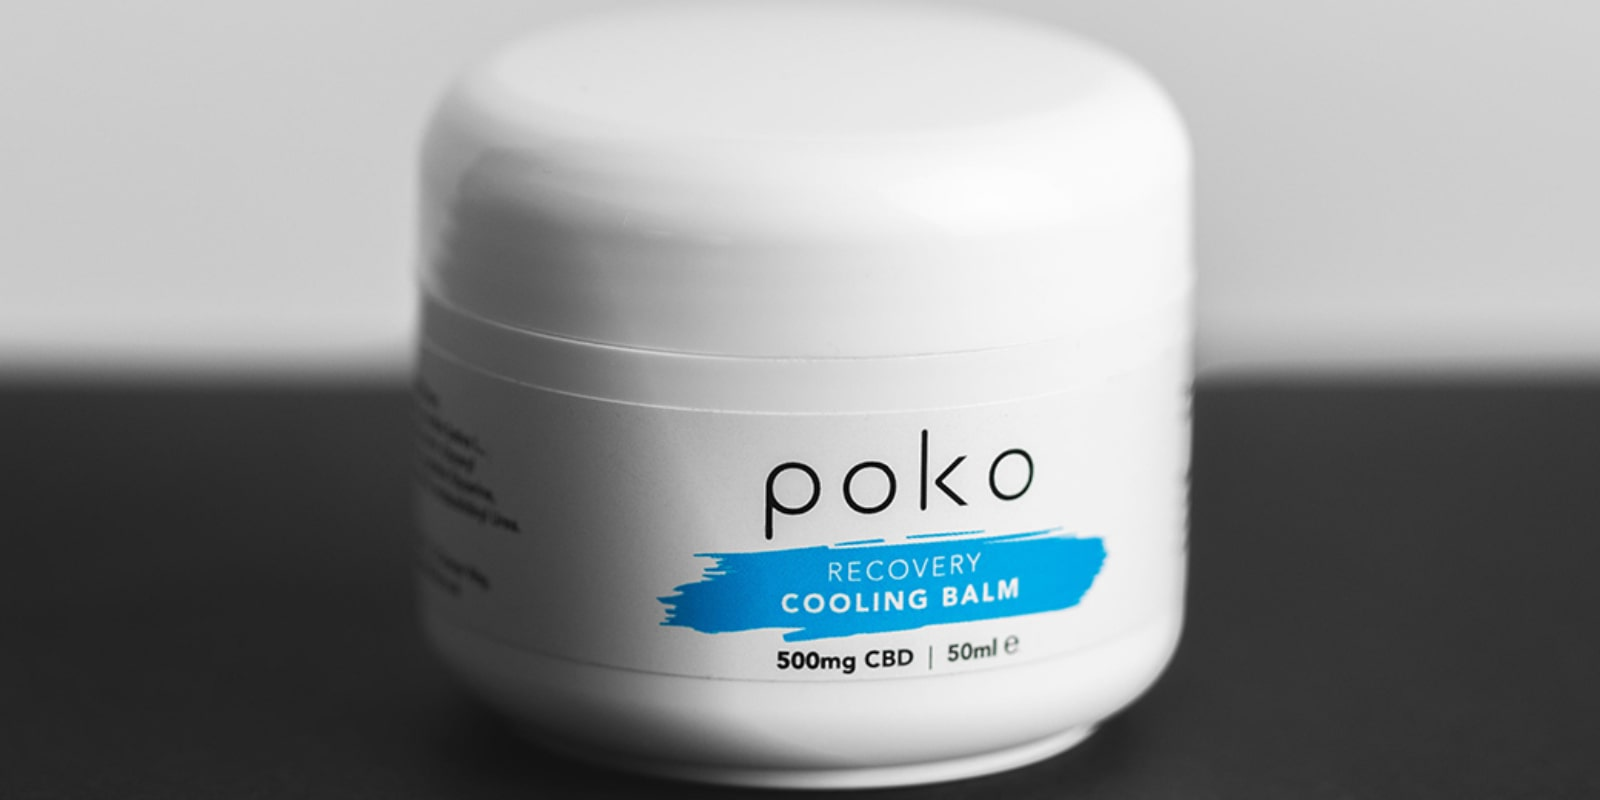 Poko Recovery Cooling Balm